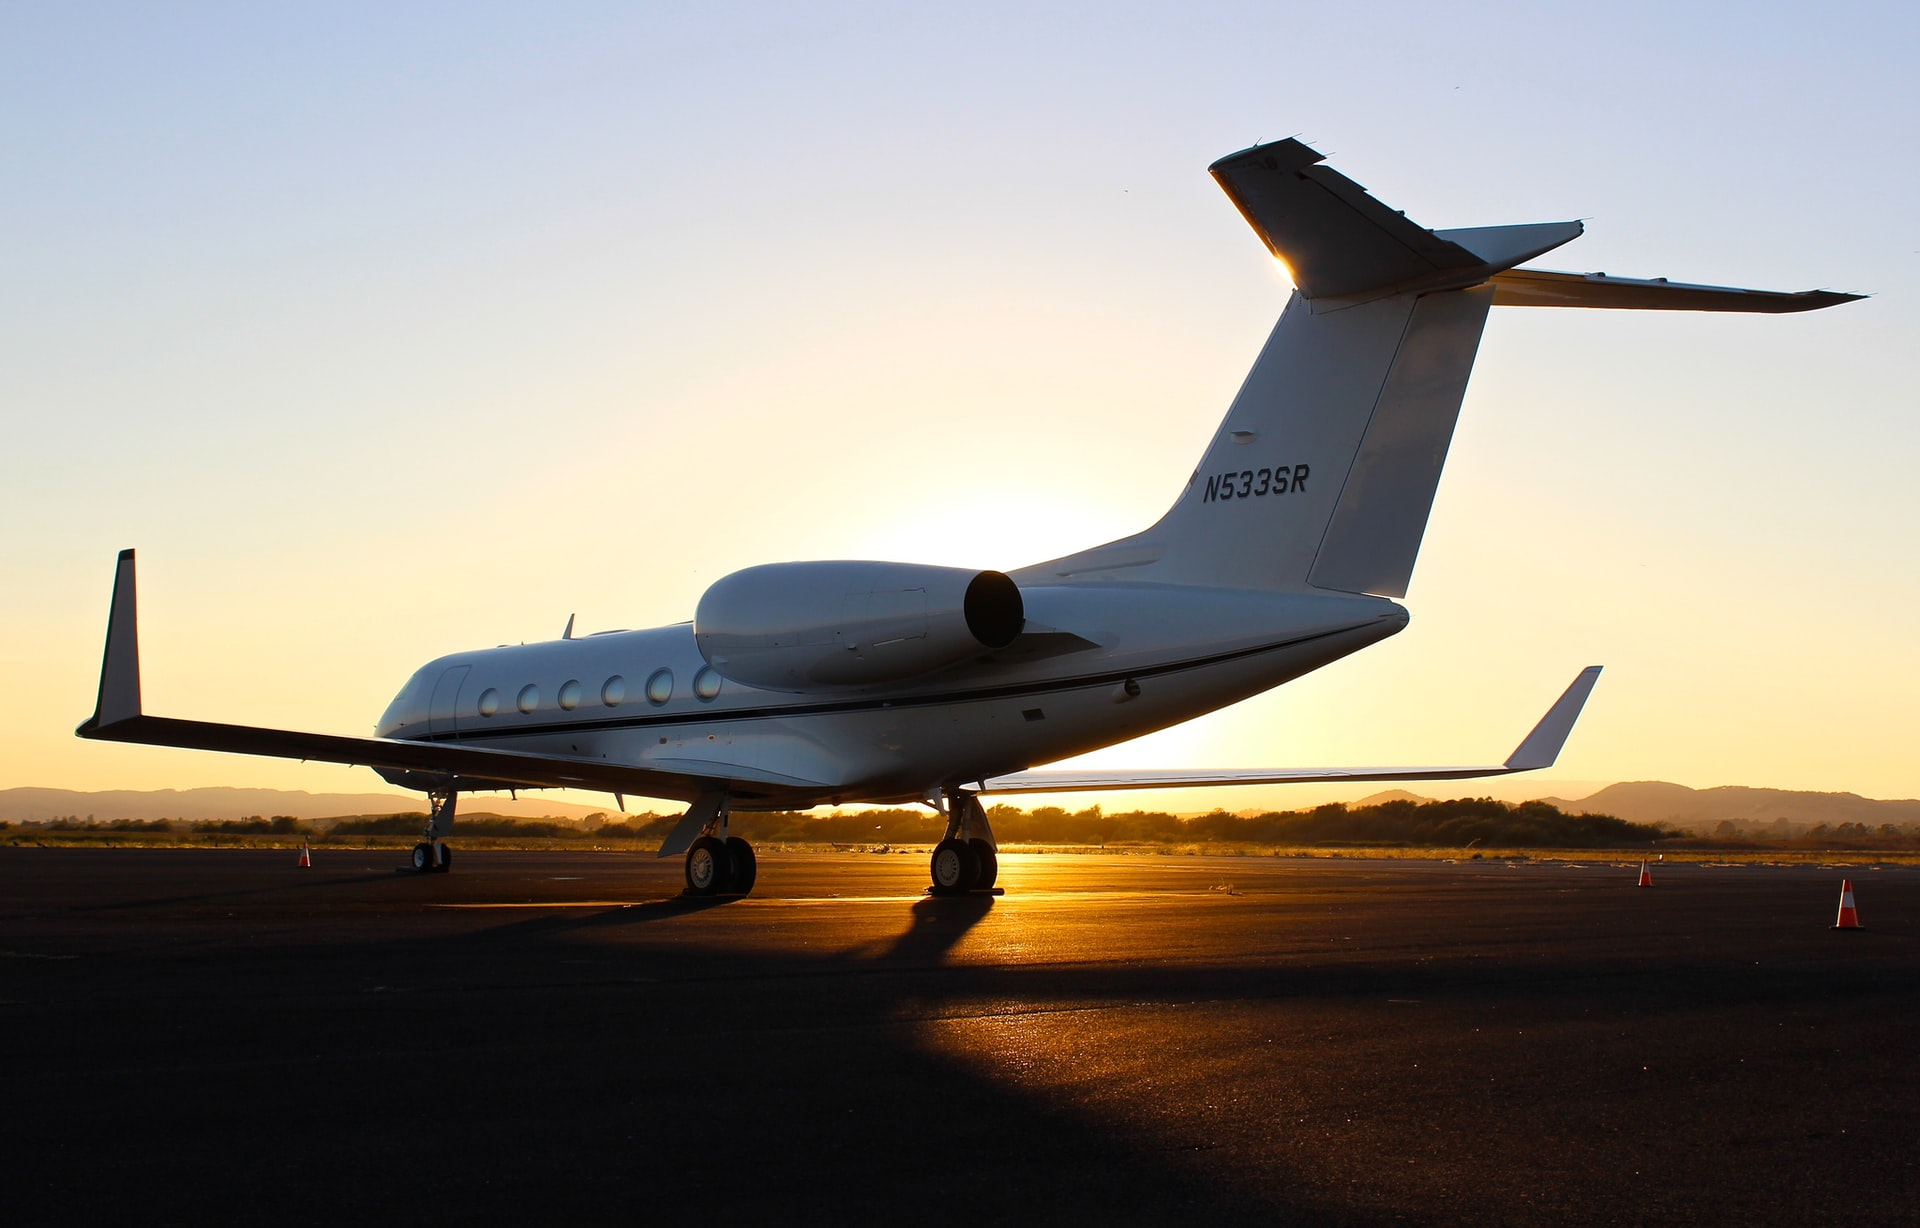 Jet - Miami Jet - Aircraft Brokerage - Jet for Sale - Aircraft for Sale